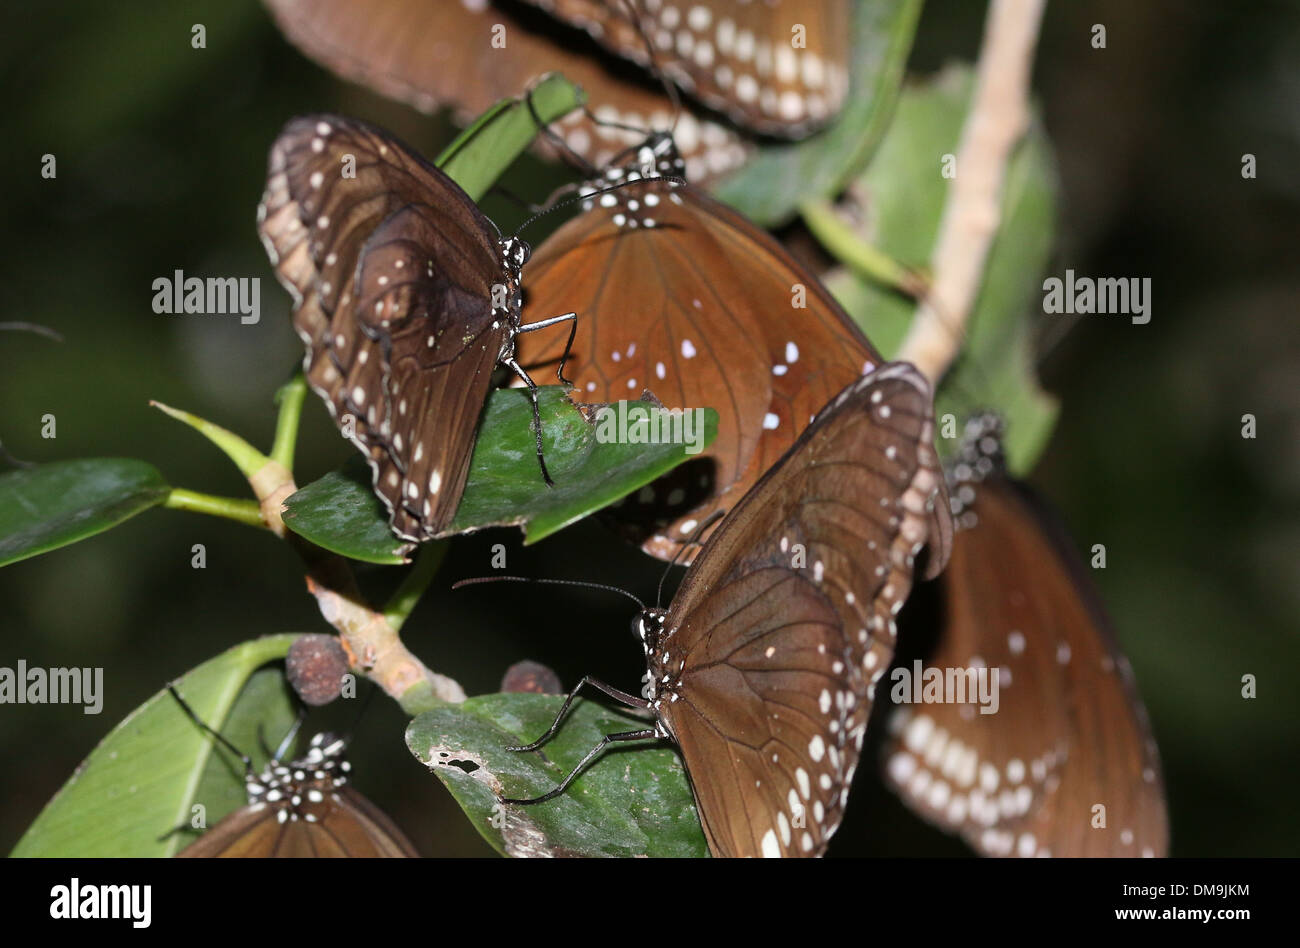 Group of Common Crow butterflies (Euploea core) sleeping and resting at night - Stock Image